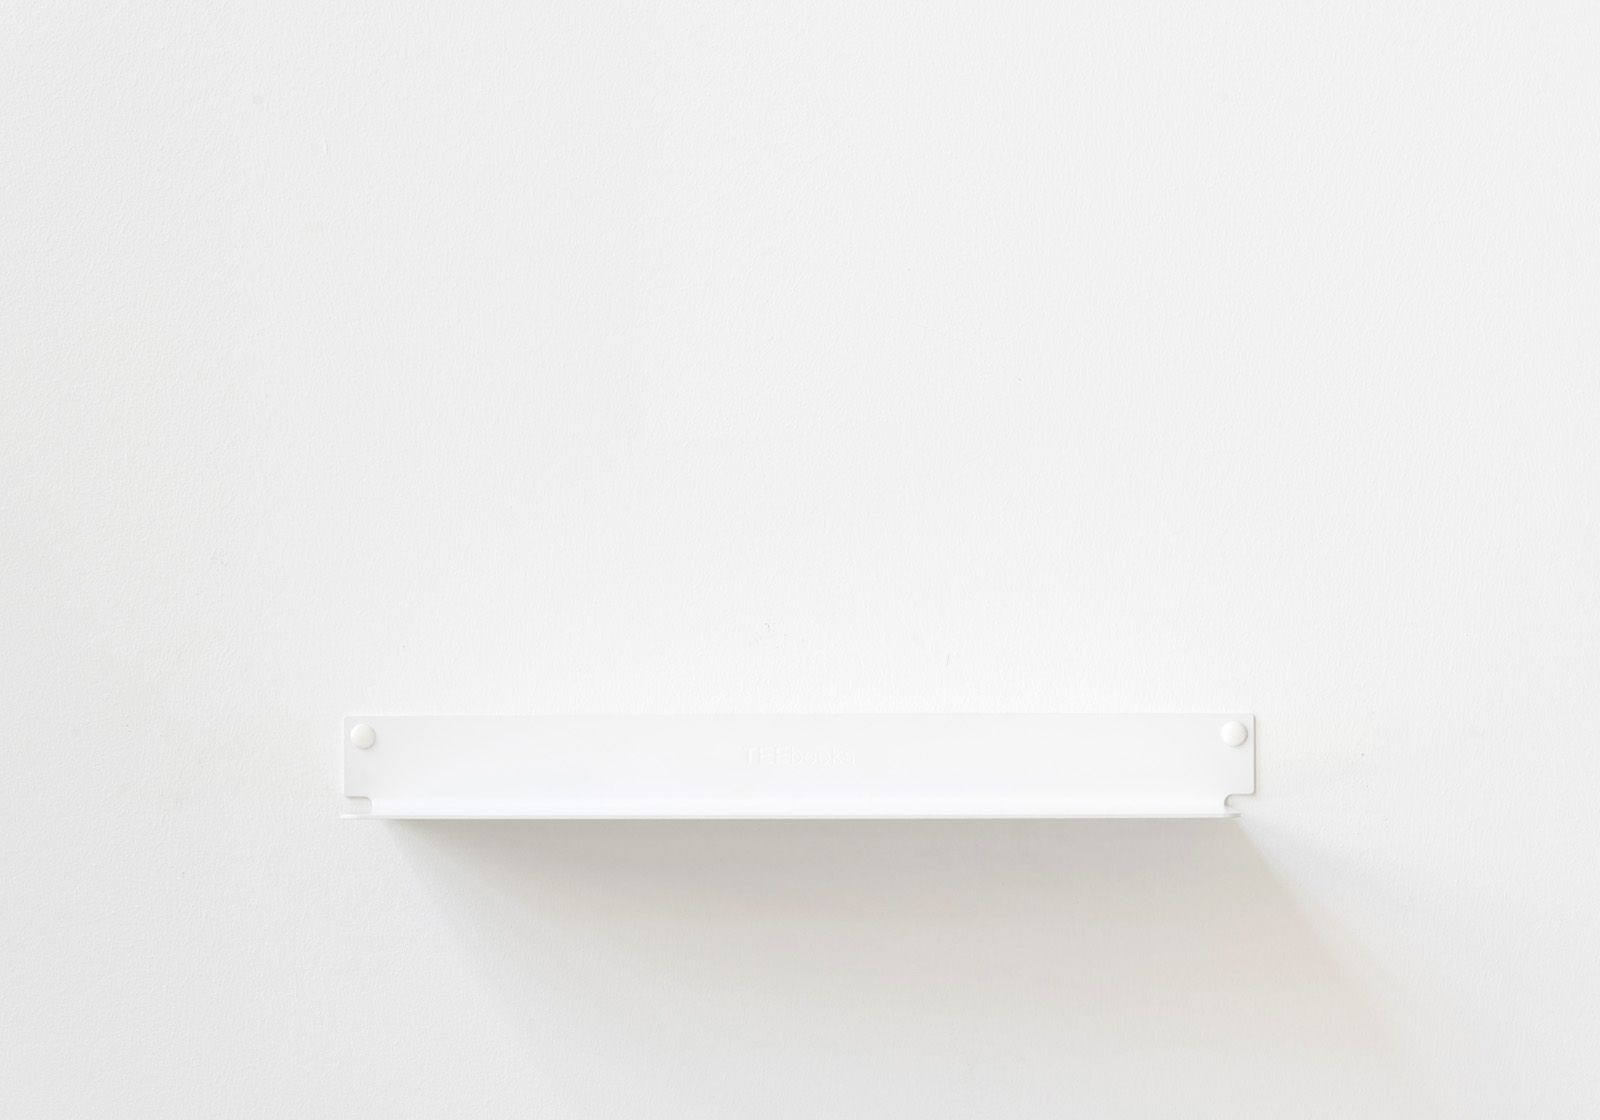 300 wall shelf teeline 45 cm